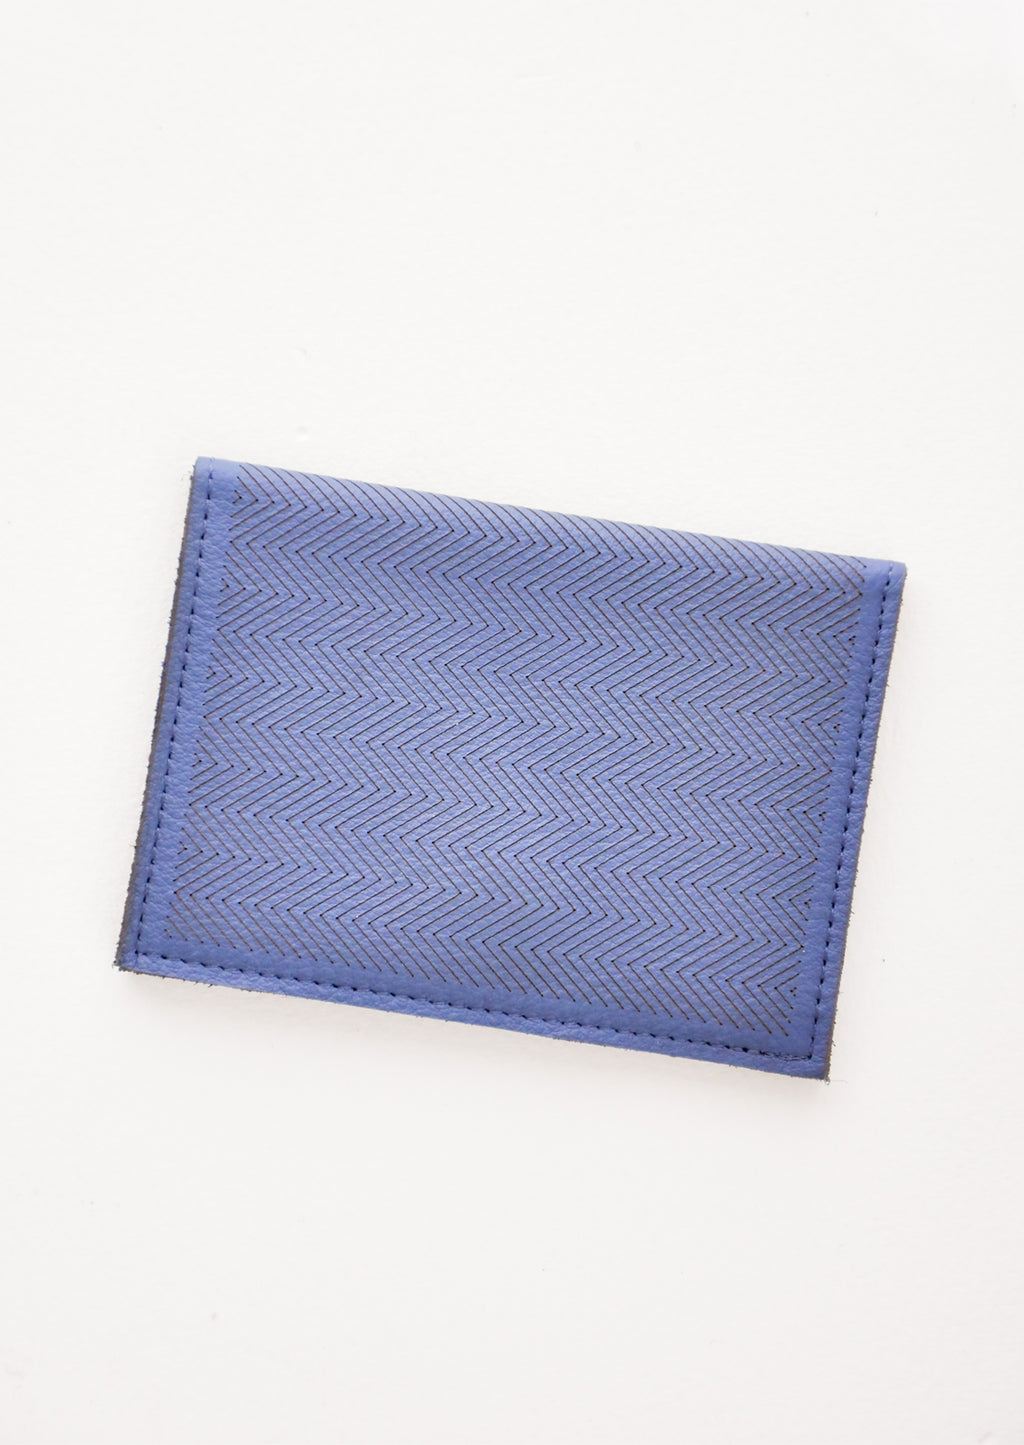 Indigo Blue: Slim dark blue leather wallet with two interior slip pockets that folds closed with a snap, shown closed with zig zag etched pattern.